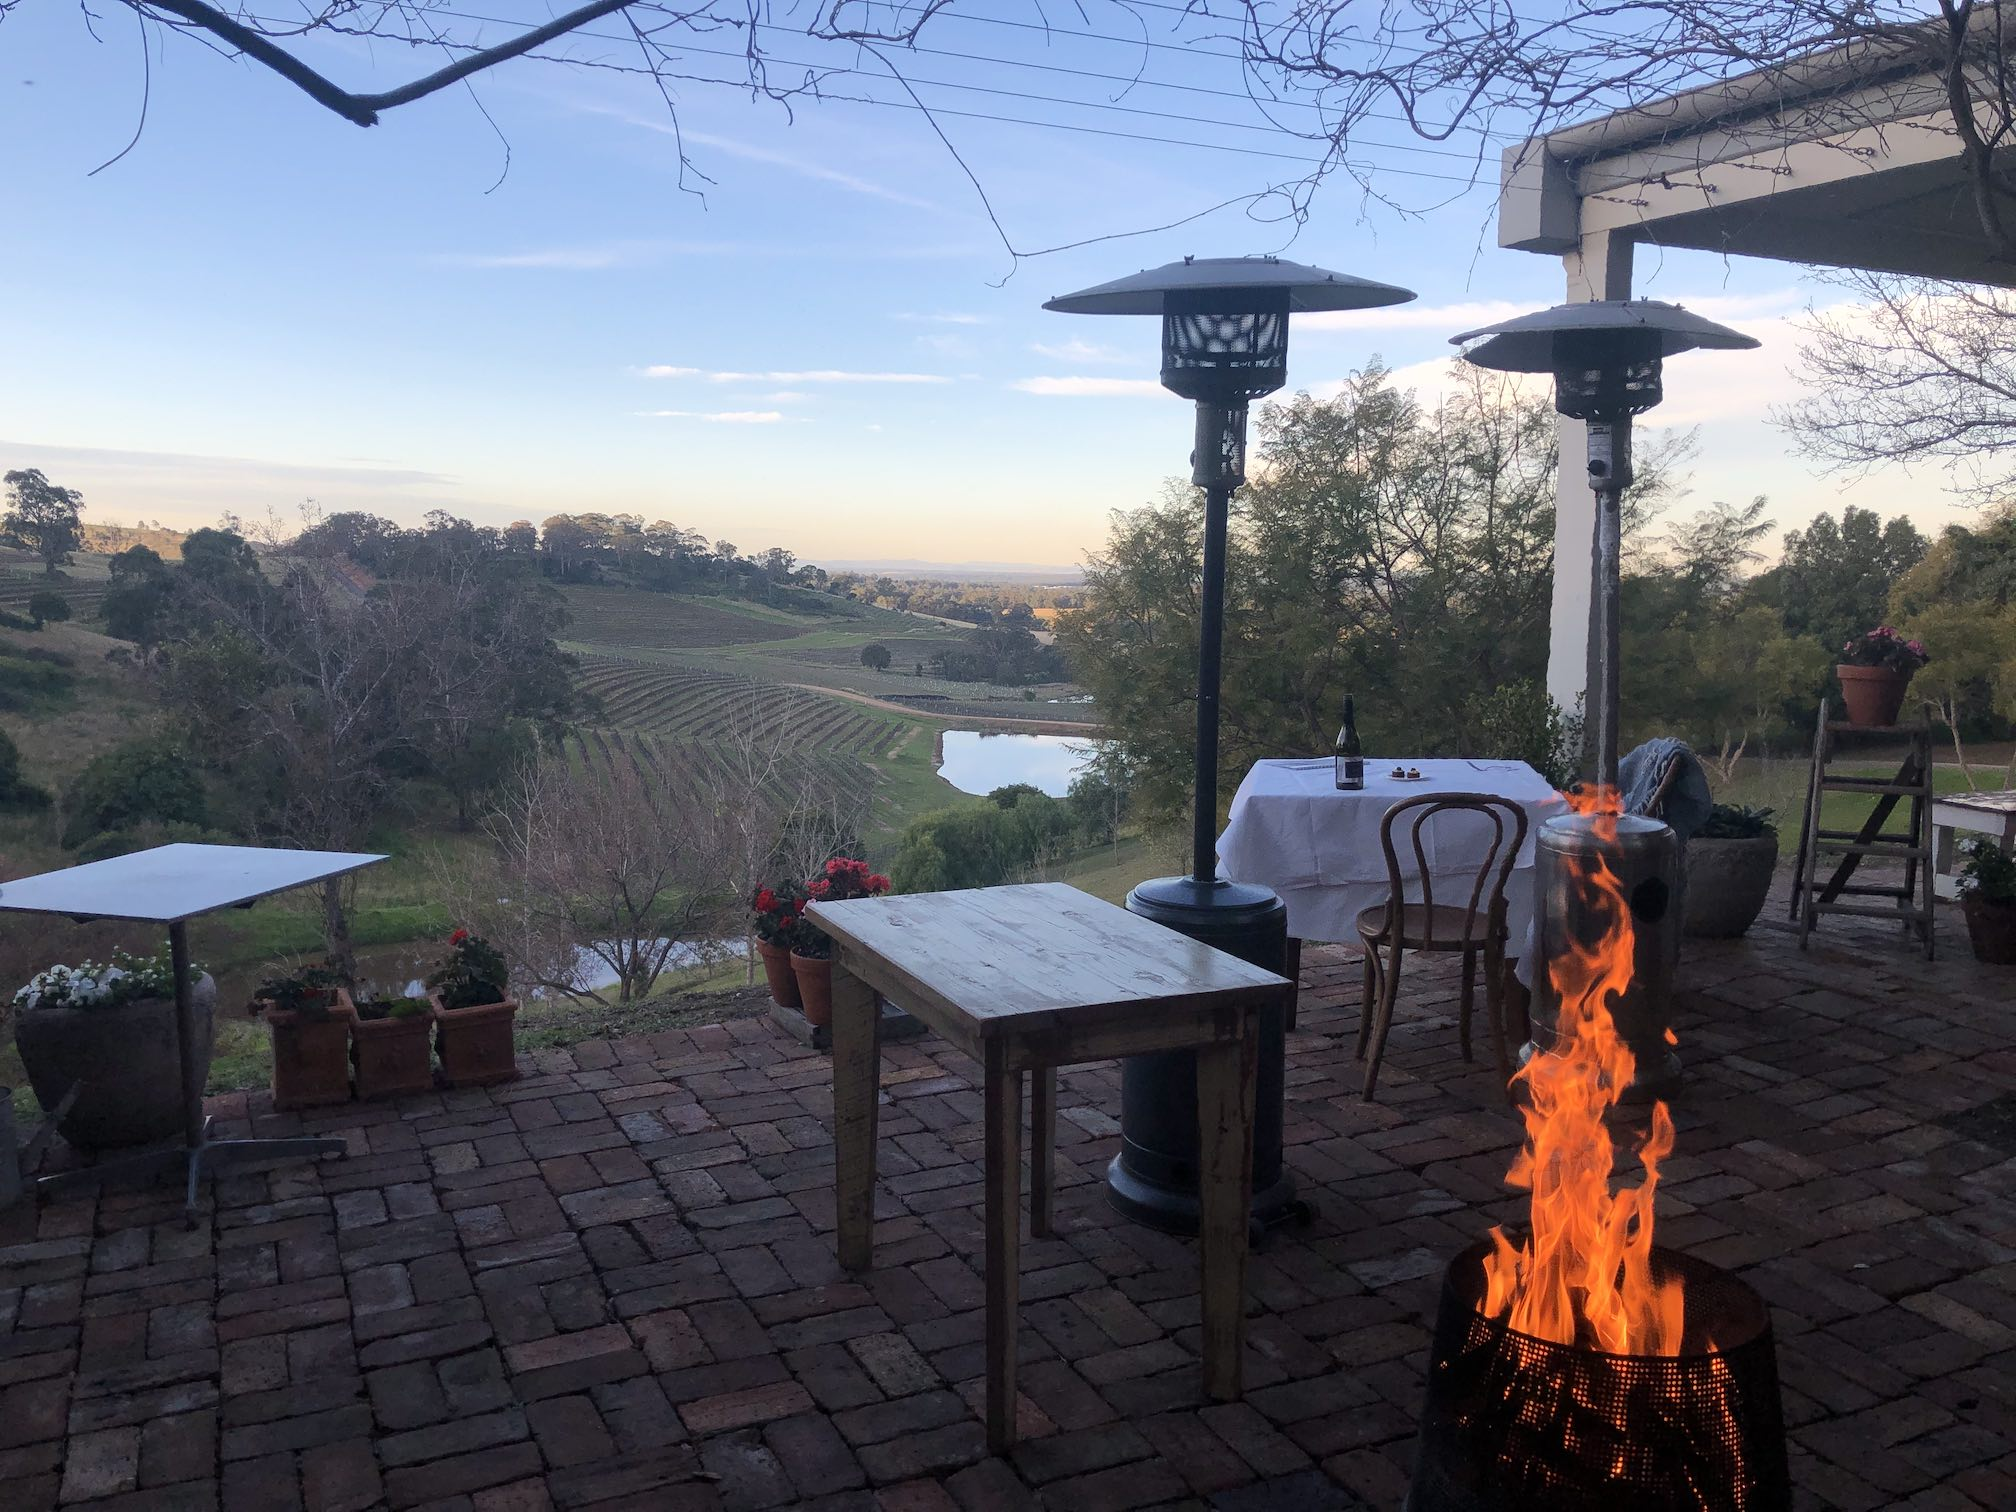 Open fire, looking out over vineyards in the valley below.